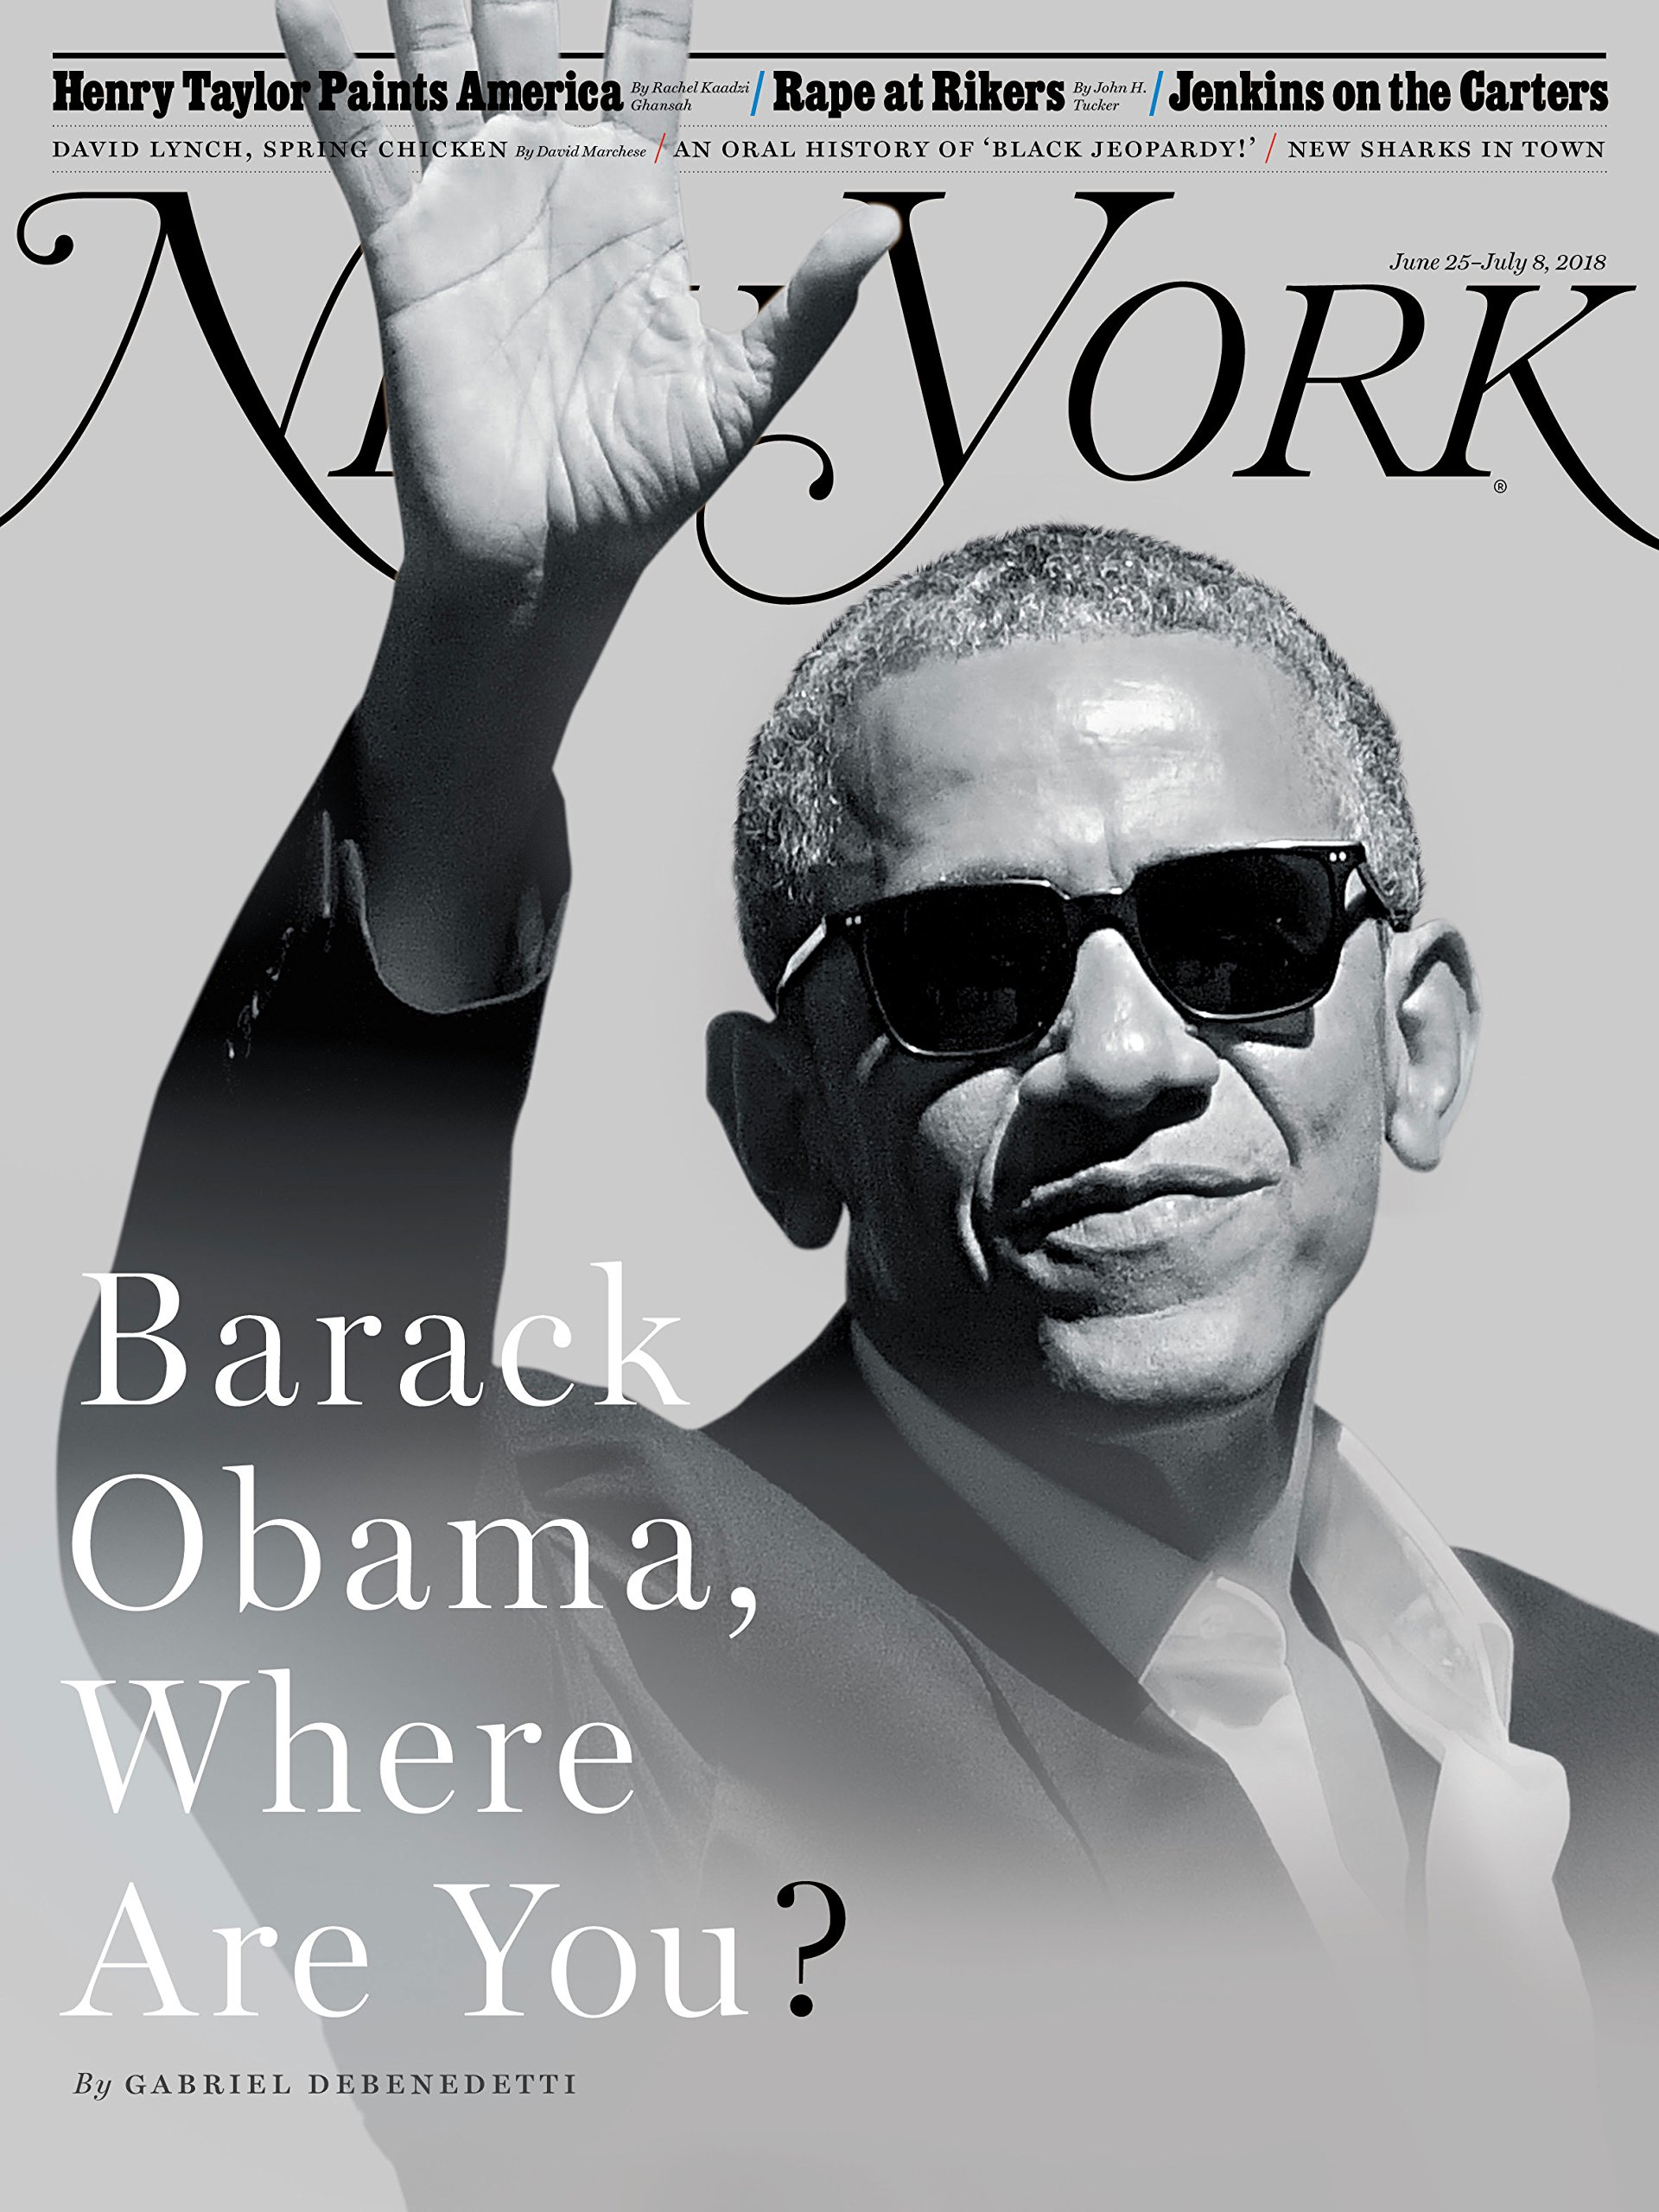 Read Online New York Magazine (June 25, 2018 -July 8, 2018) Barack Obama, Where Are You? Cover PDF